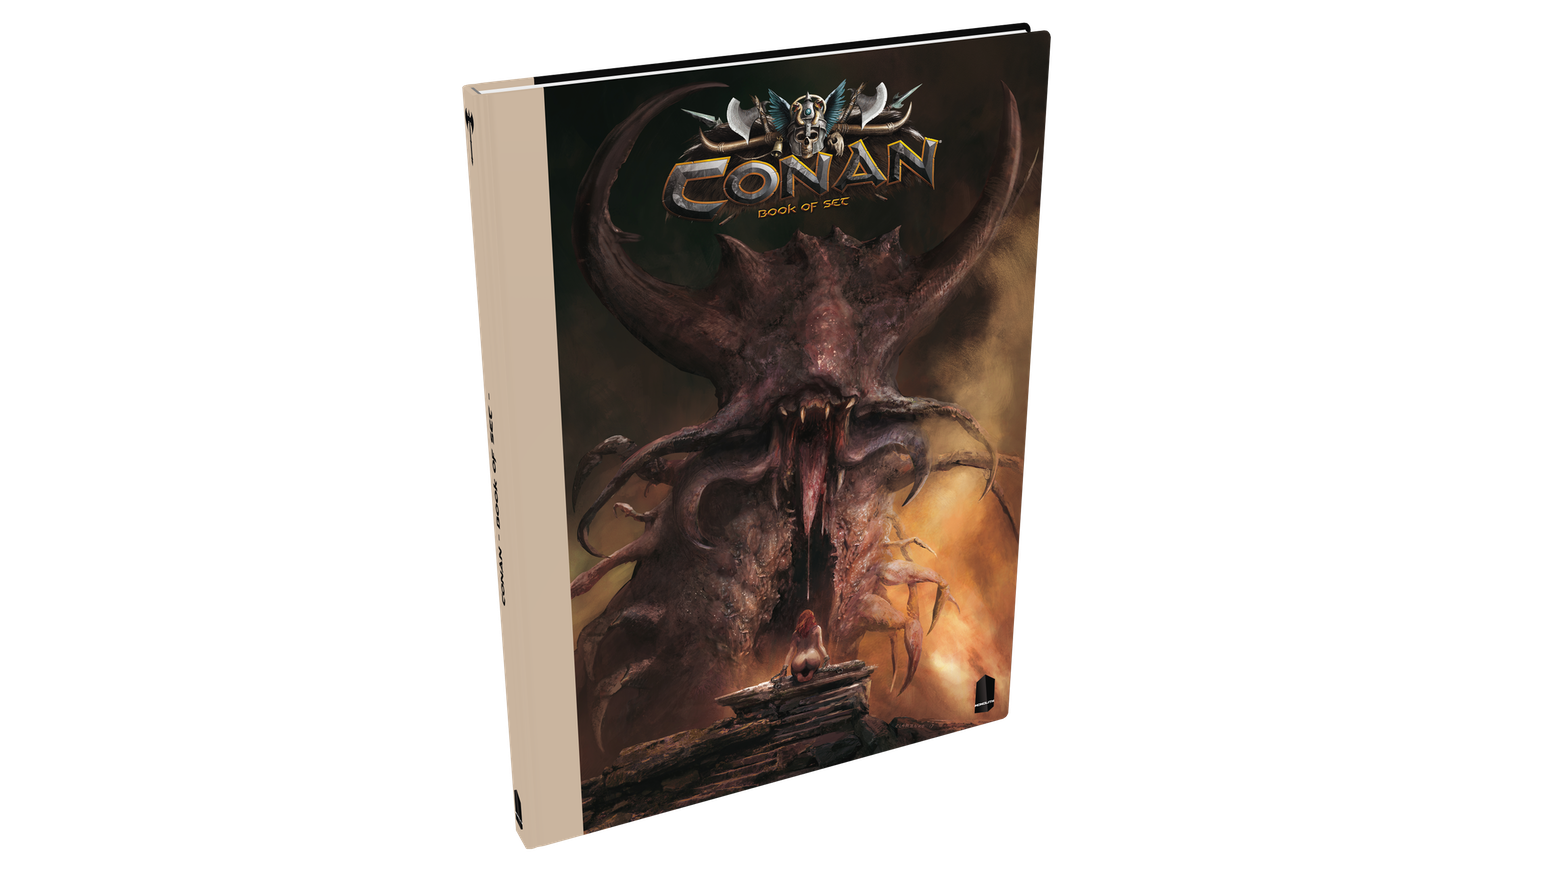 Get the Book of Set Compendium and bundles with products from our 1st Conan Kickstarter campaign during a 5-day campaign.